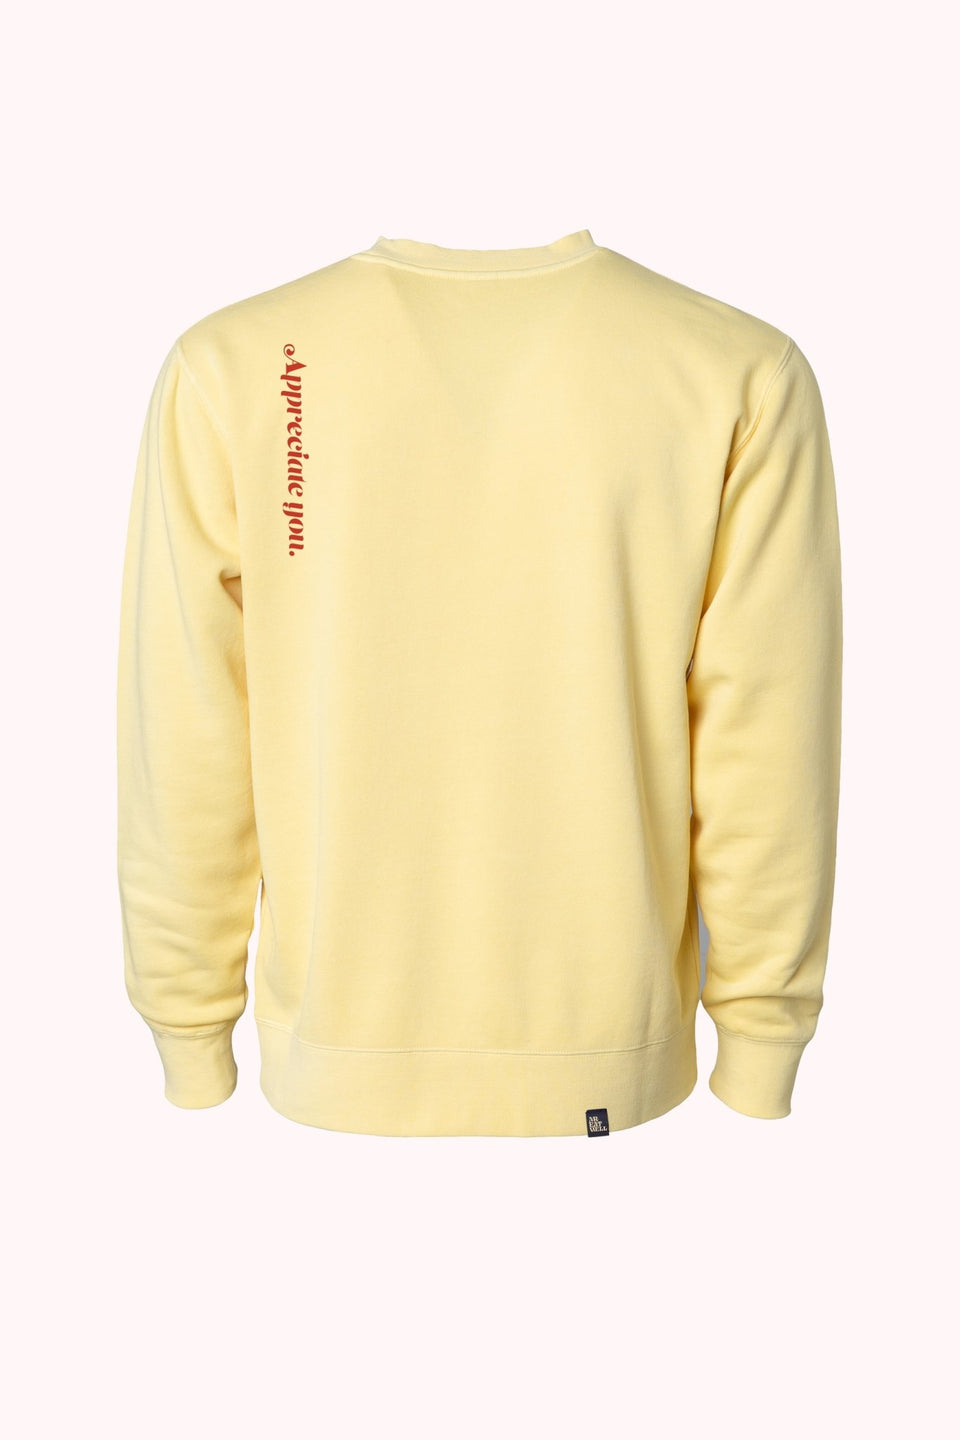 """Relax"" PB Cup Crew in Limoncello Yellow (In Stock - Ships Next Day!) - MR EATWELL"